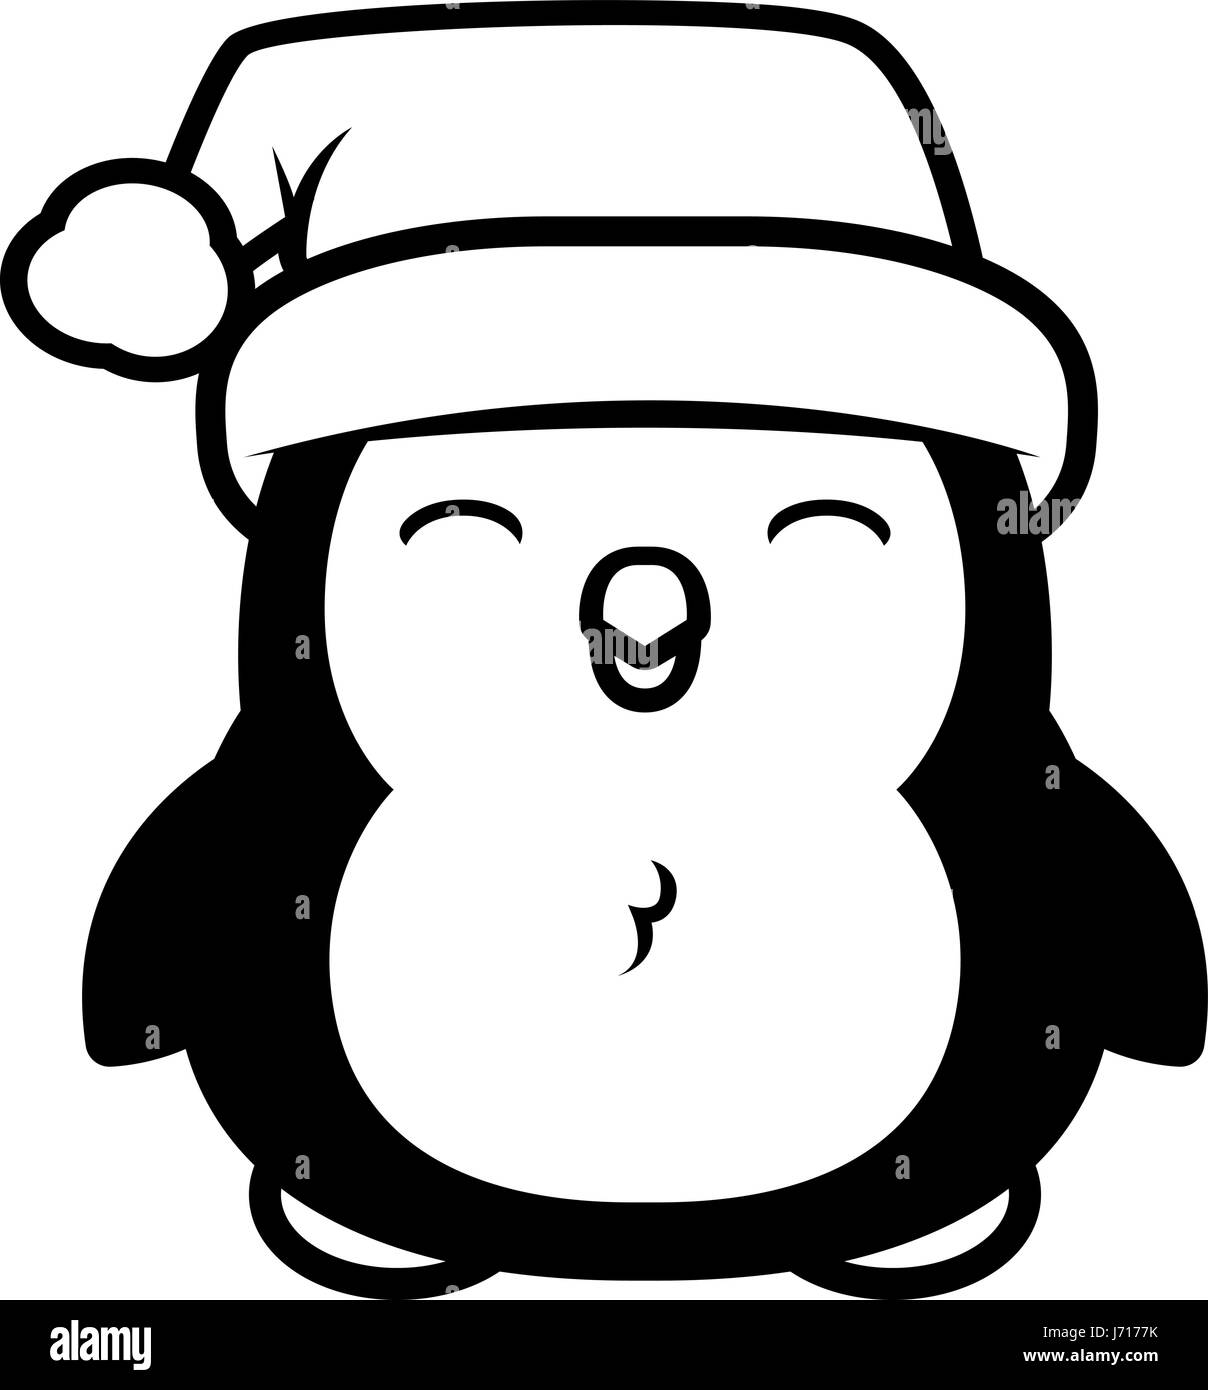 Penguin black and white clipart